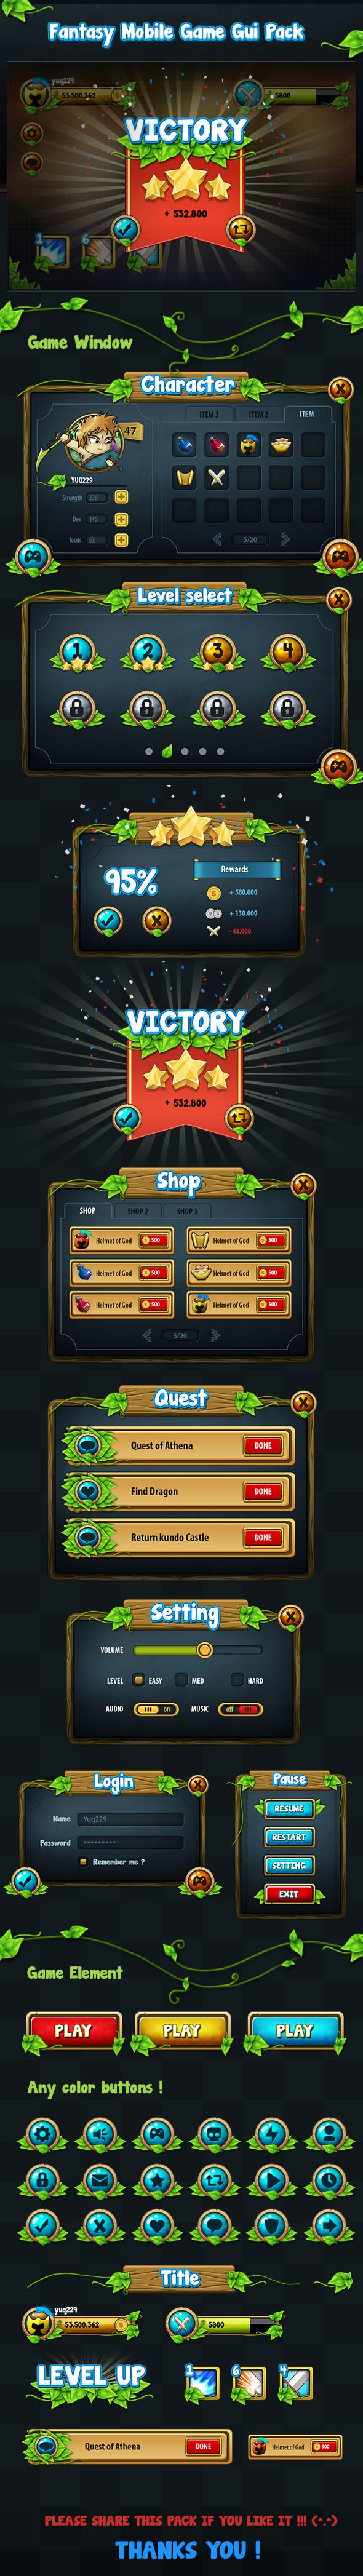 Fantasy Mobile Game Gui Pack 04 Every screen shares a similar aesthetic to create a unity between the screens. The artwork, borders, font and icons are mainly bright to emphasise them.